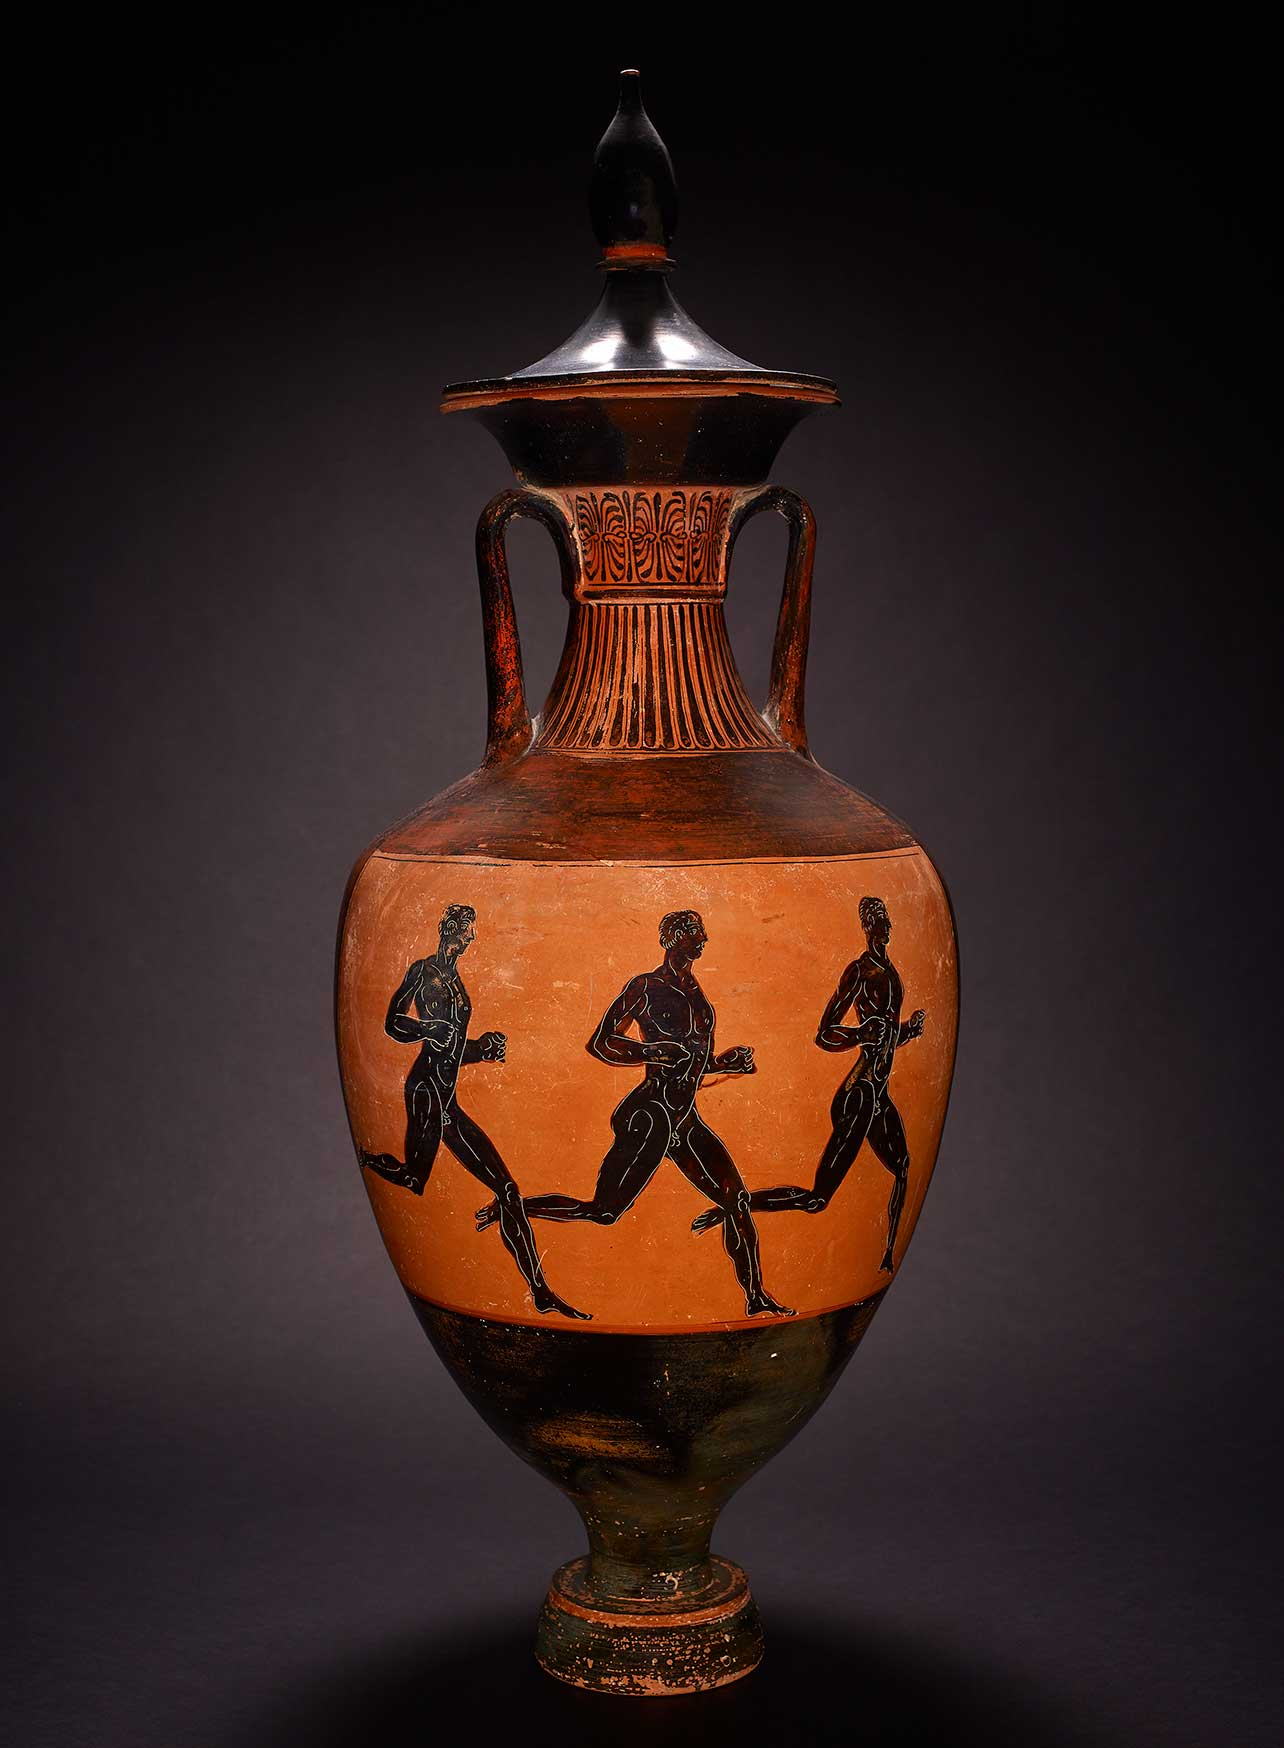 Ancient Greeks exhibition coming to the National Museum of Australia